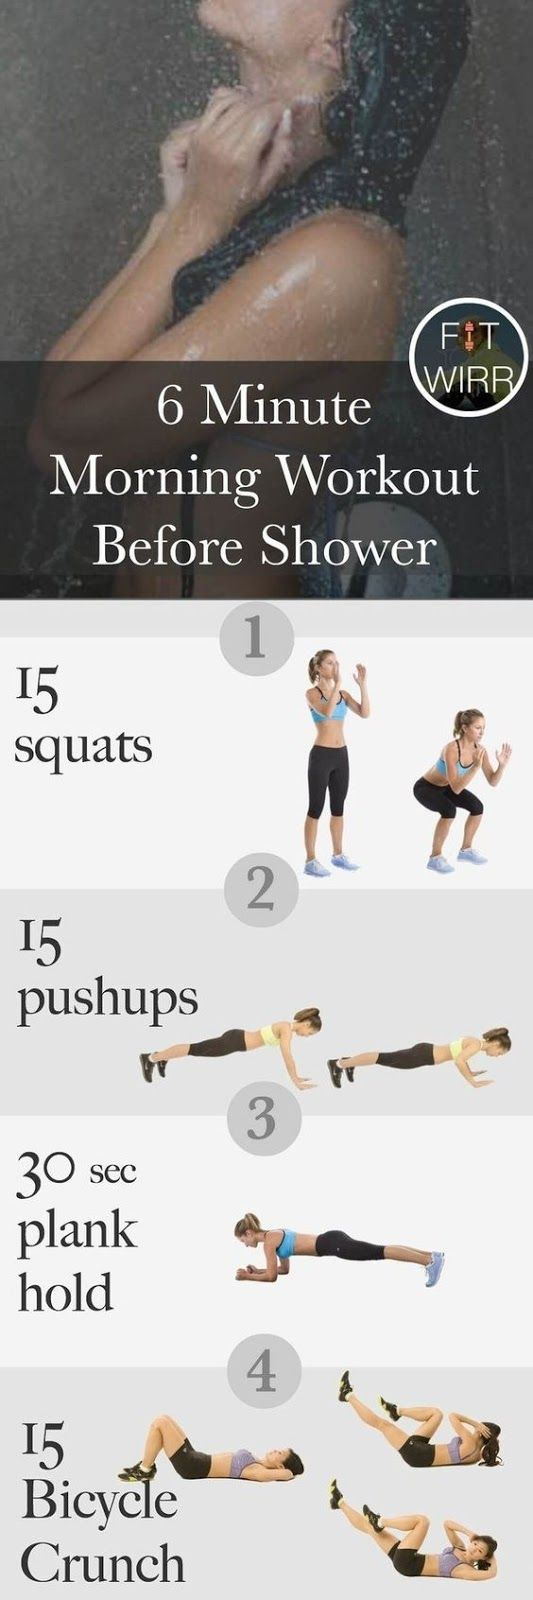 18 Quick Workouts That'll Help You Exercise Pretty Much Anywhere | Posted By: CustomWeightLossProgram.com